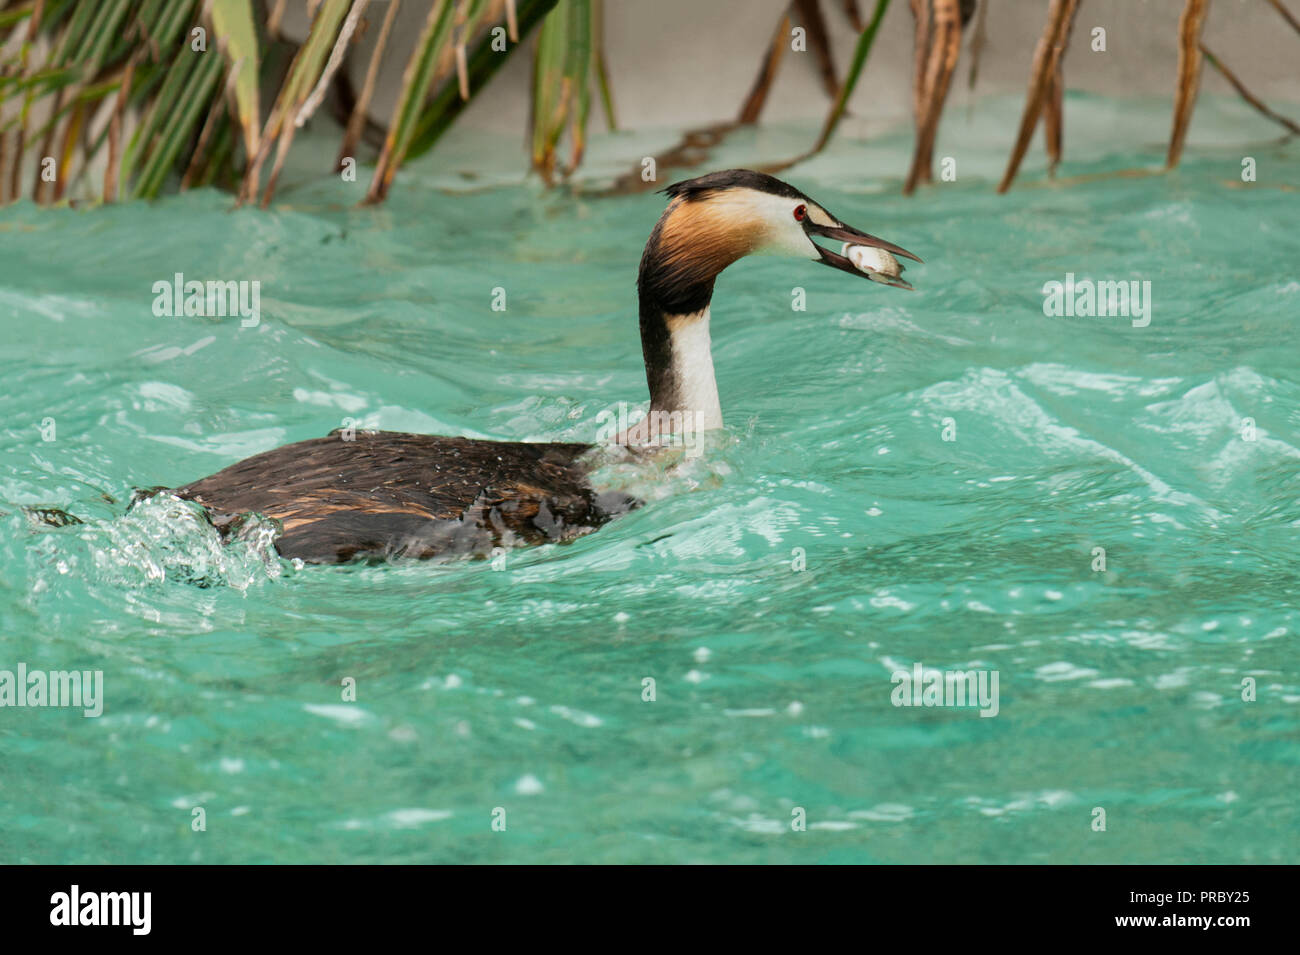 Great Crested Grebe (Podiceps cristatus).Adult in summer plumage.Carrying a large fish. - Stock Image